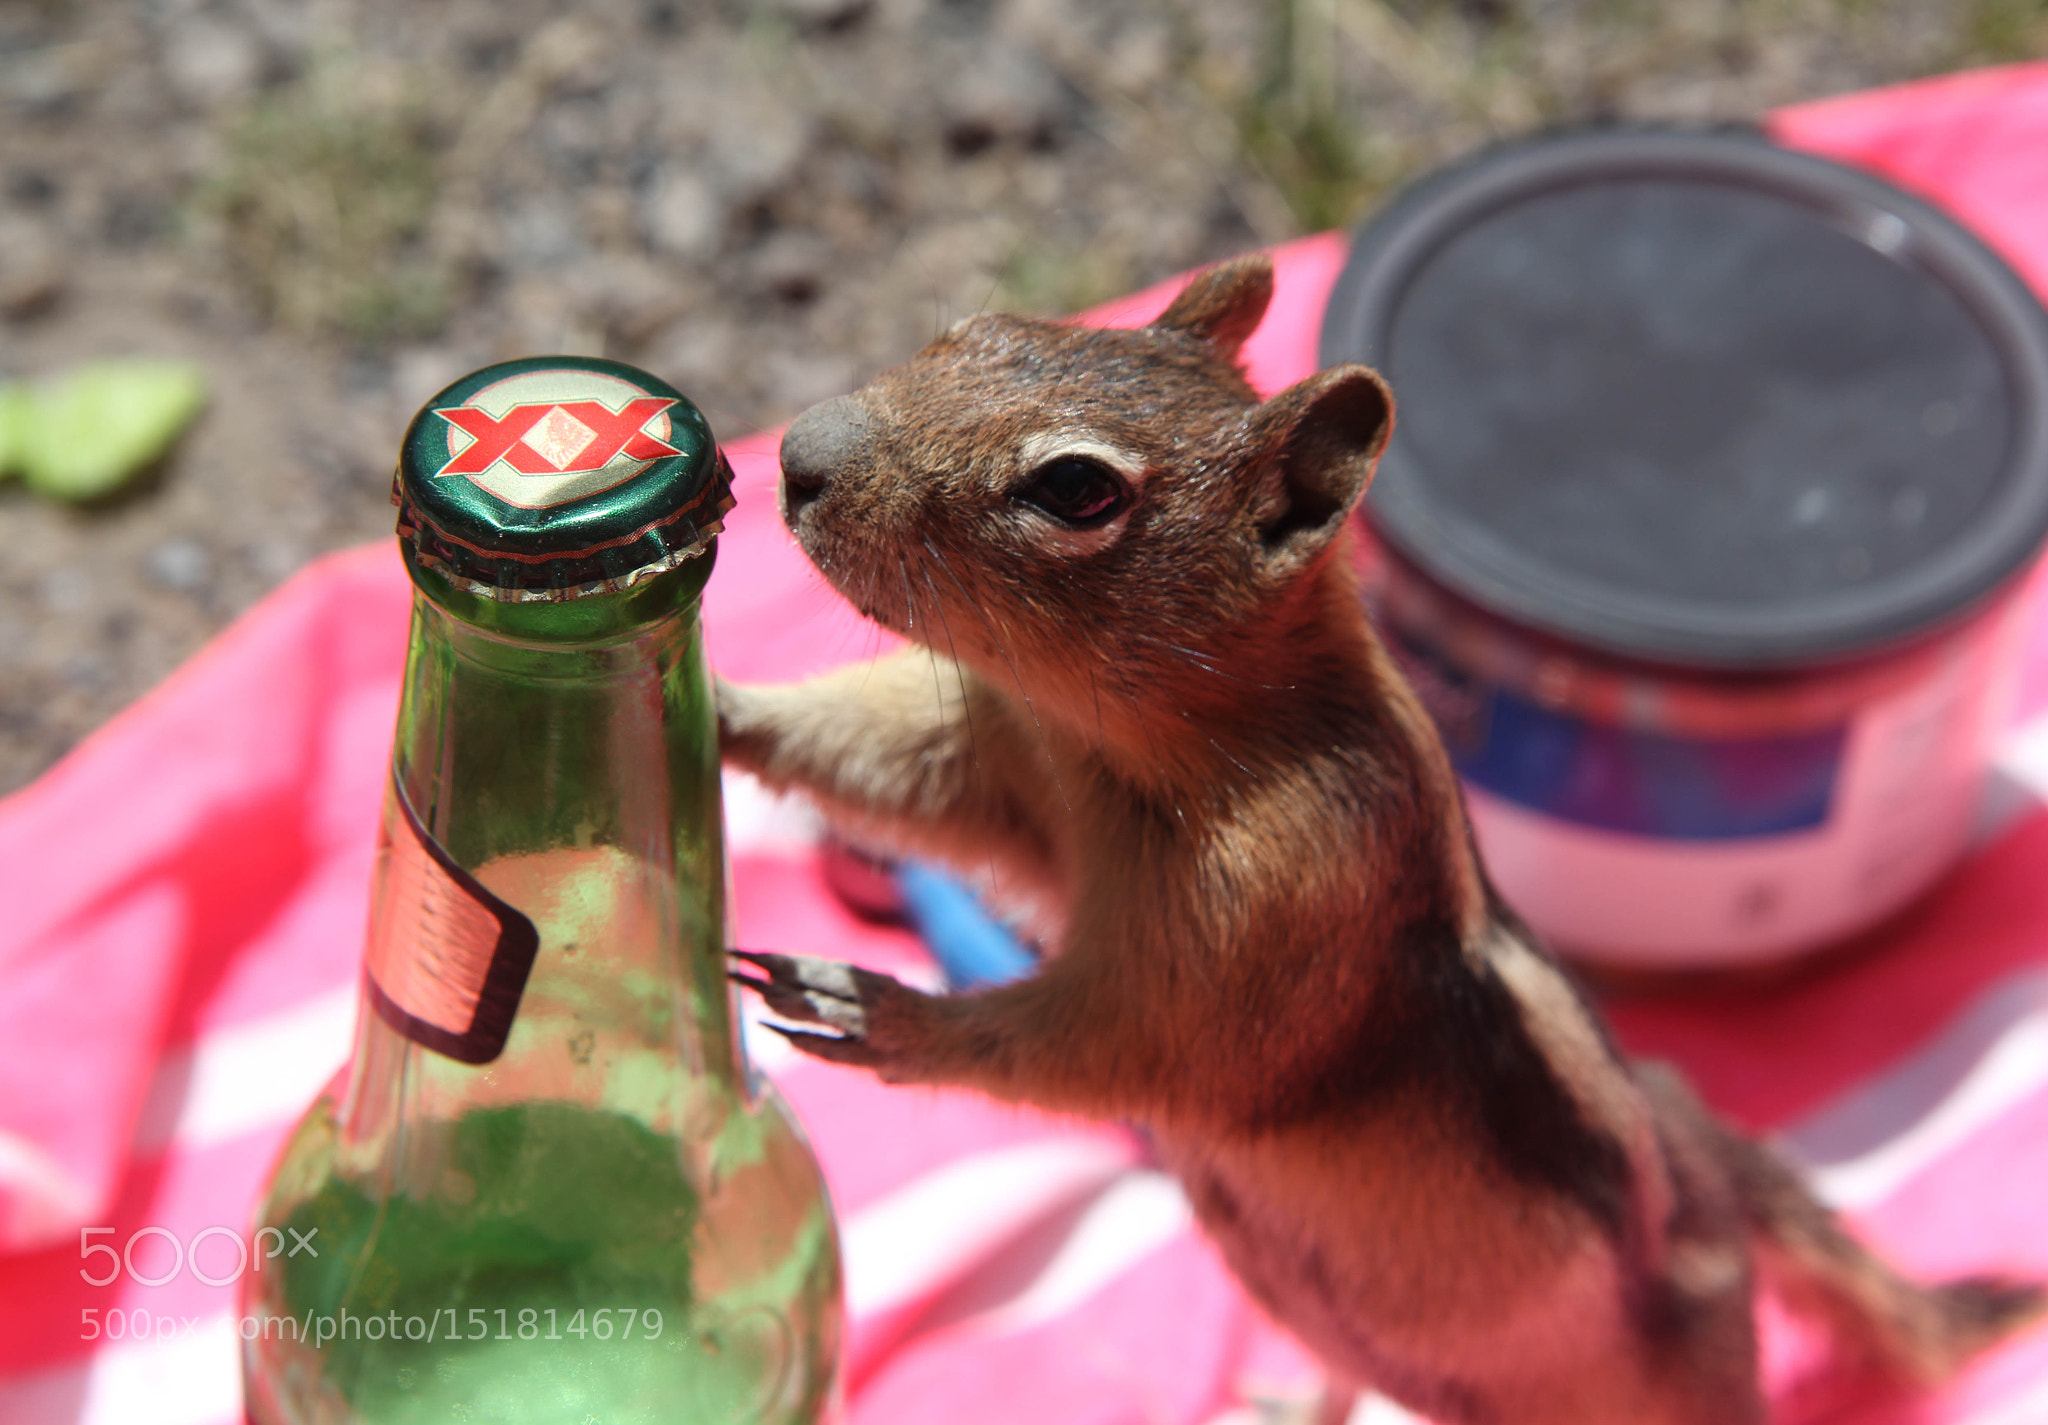 A chipmunk's love for Dos Equis